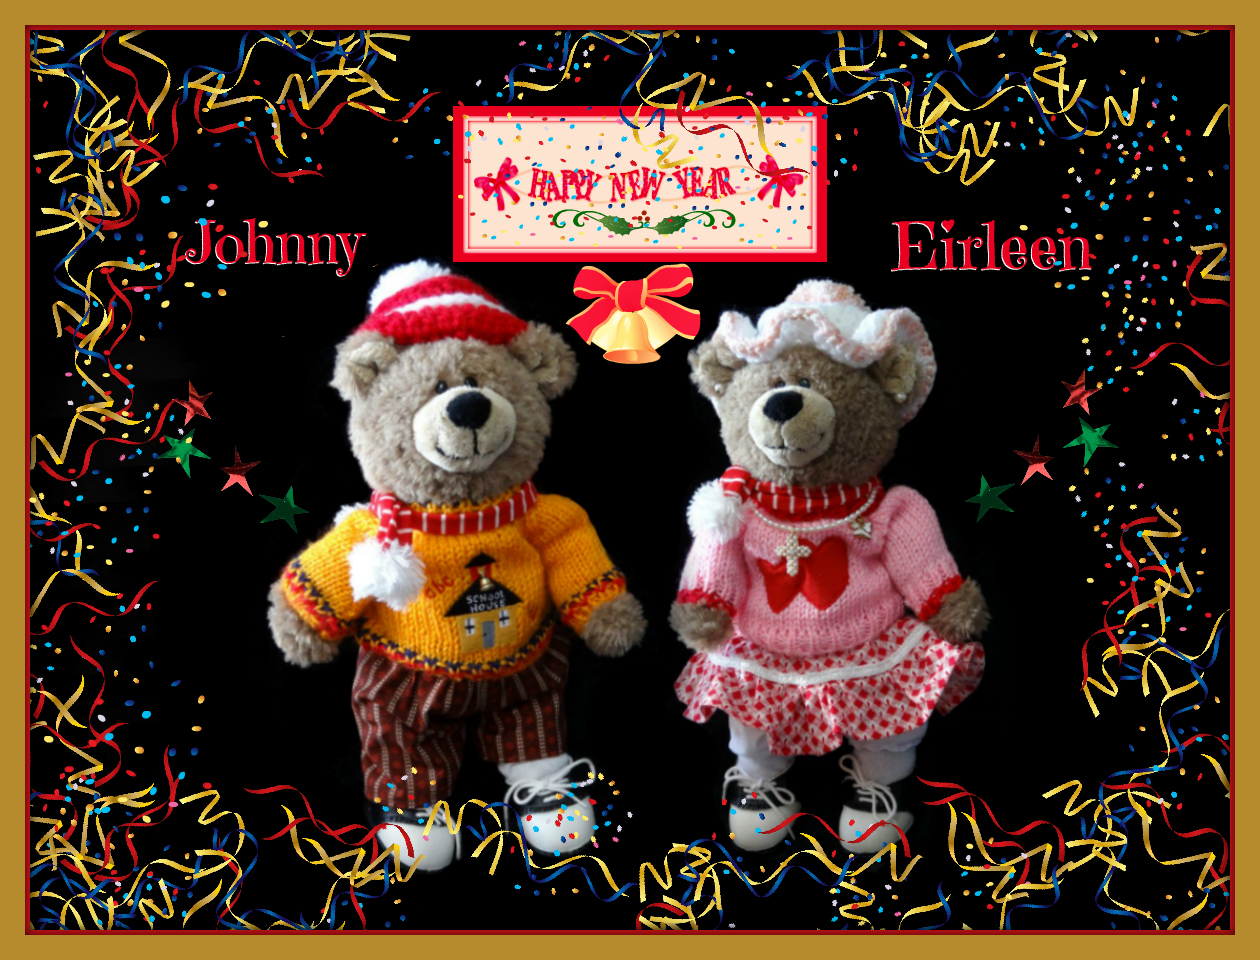 Happy New Year from Johnny & Eirleen